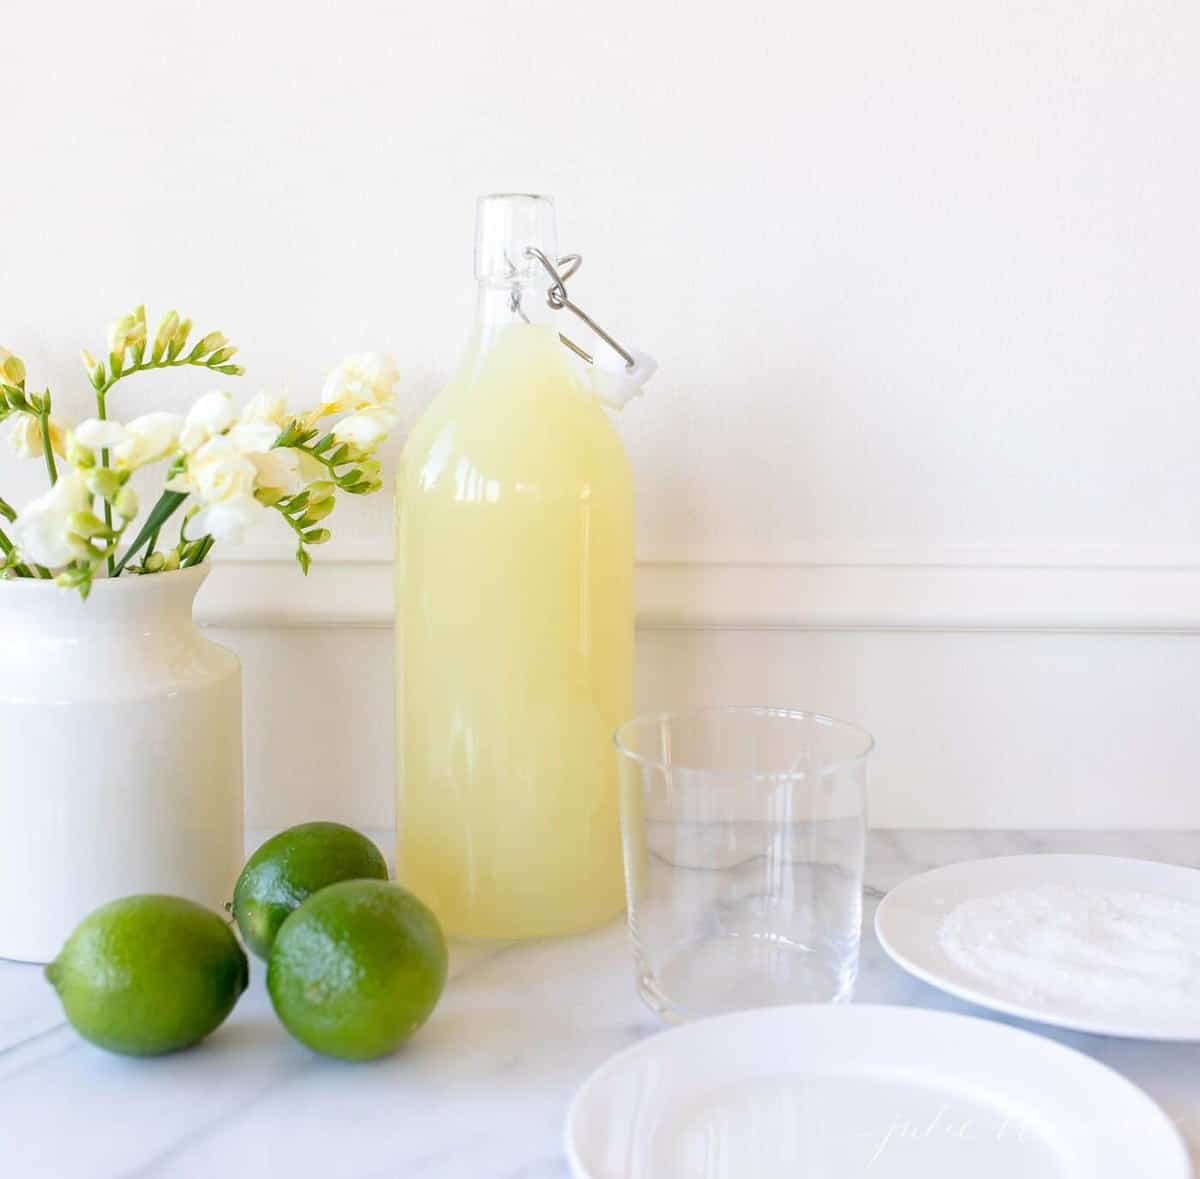 Homemade margarita mix in a glass carafe; a vase full of yellow flowers sits to the side.